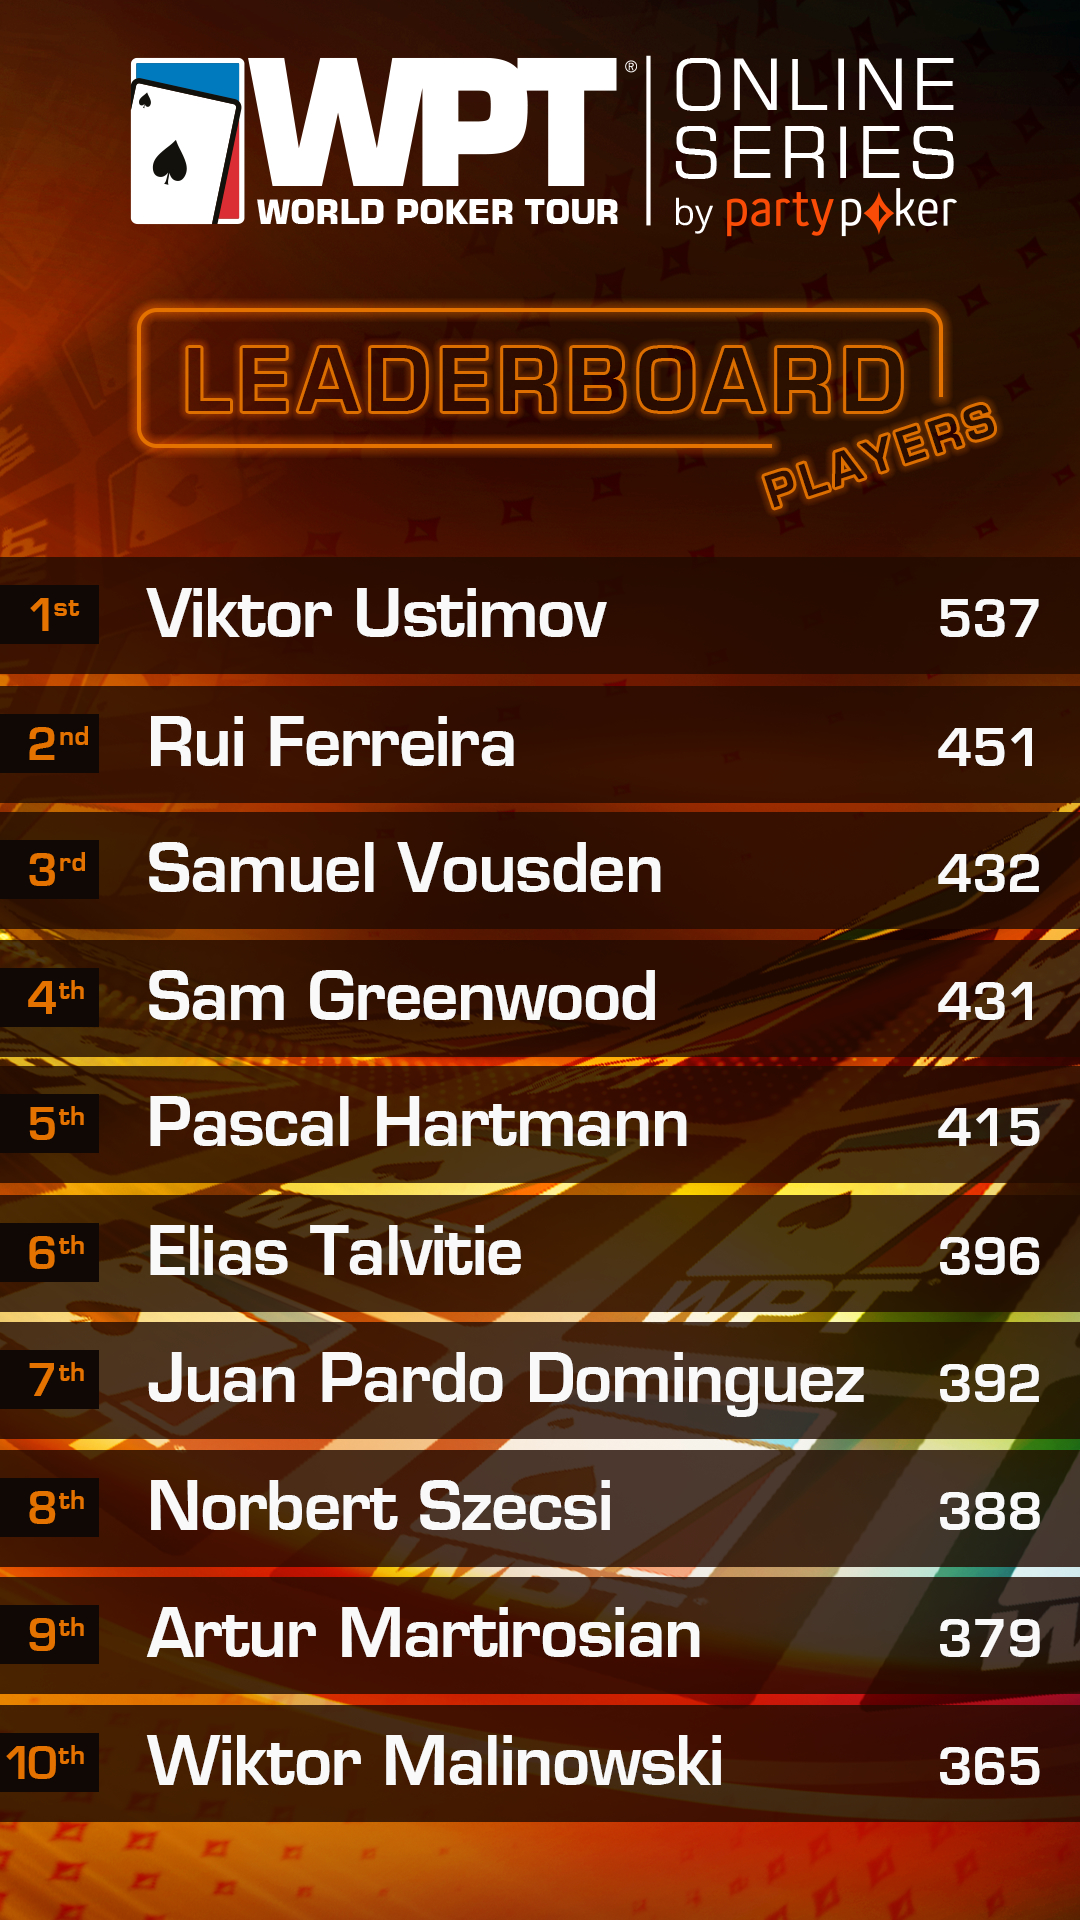 WPT Leaderboard 22 May